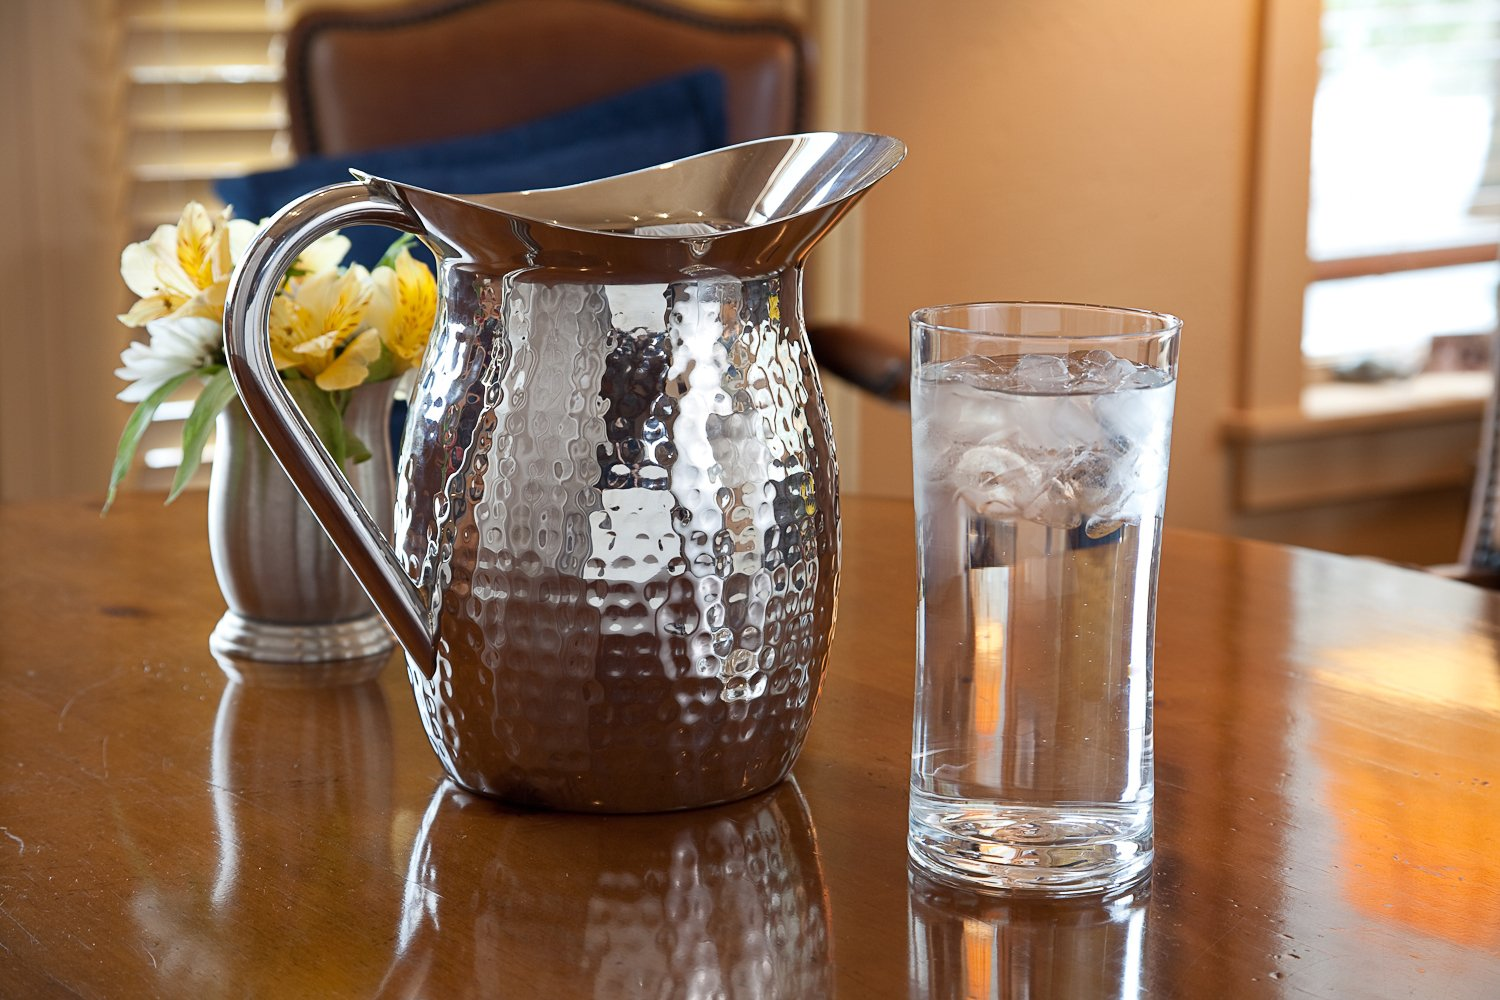 Artisan 2-Quart Double-Wall, Stainless Steel Insulated Serving Pitcher with Hammered Texture by Artisan (Image #2)